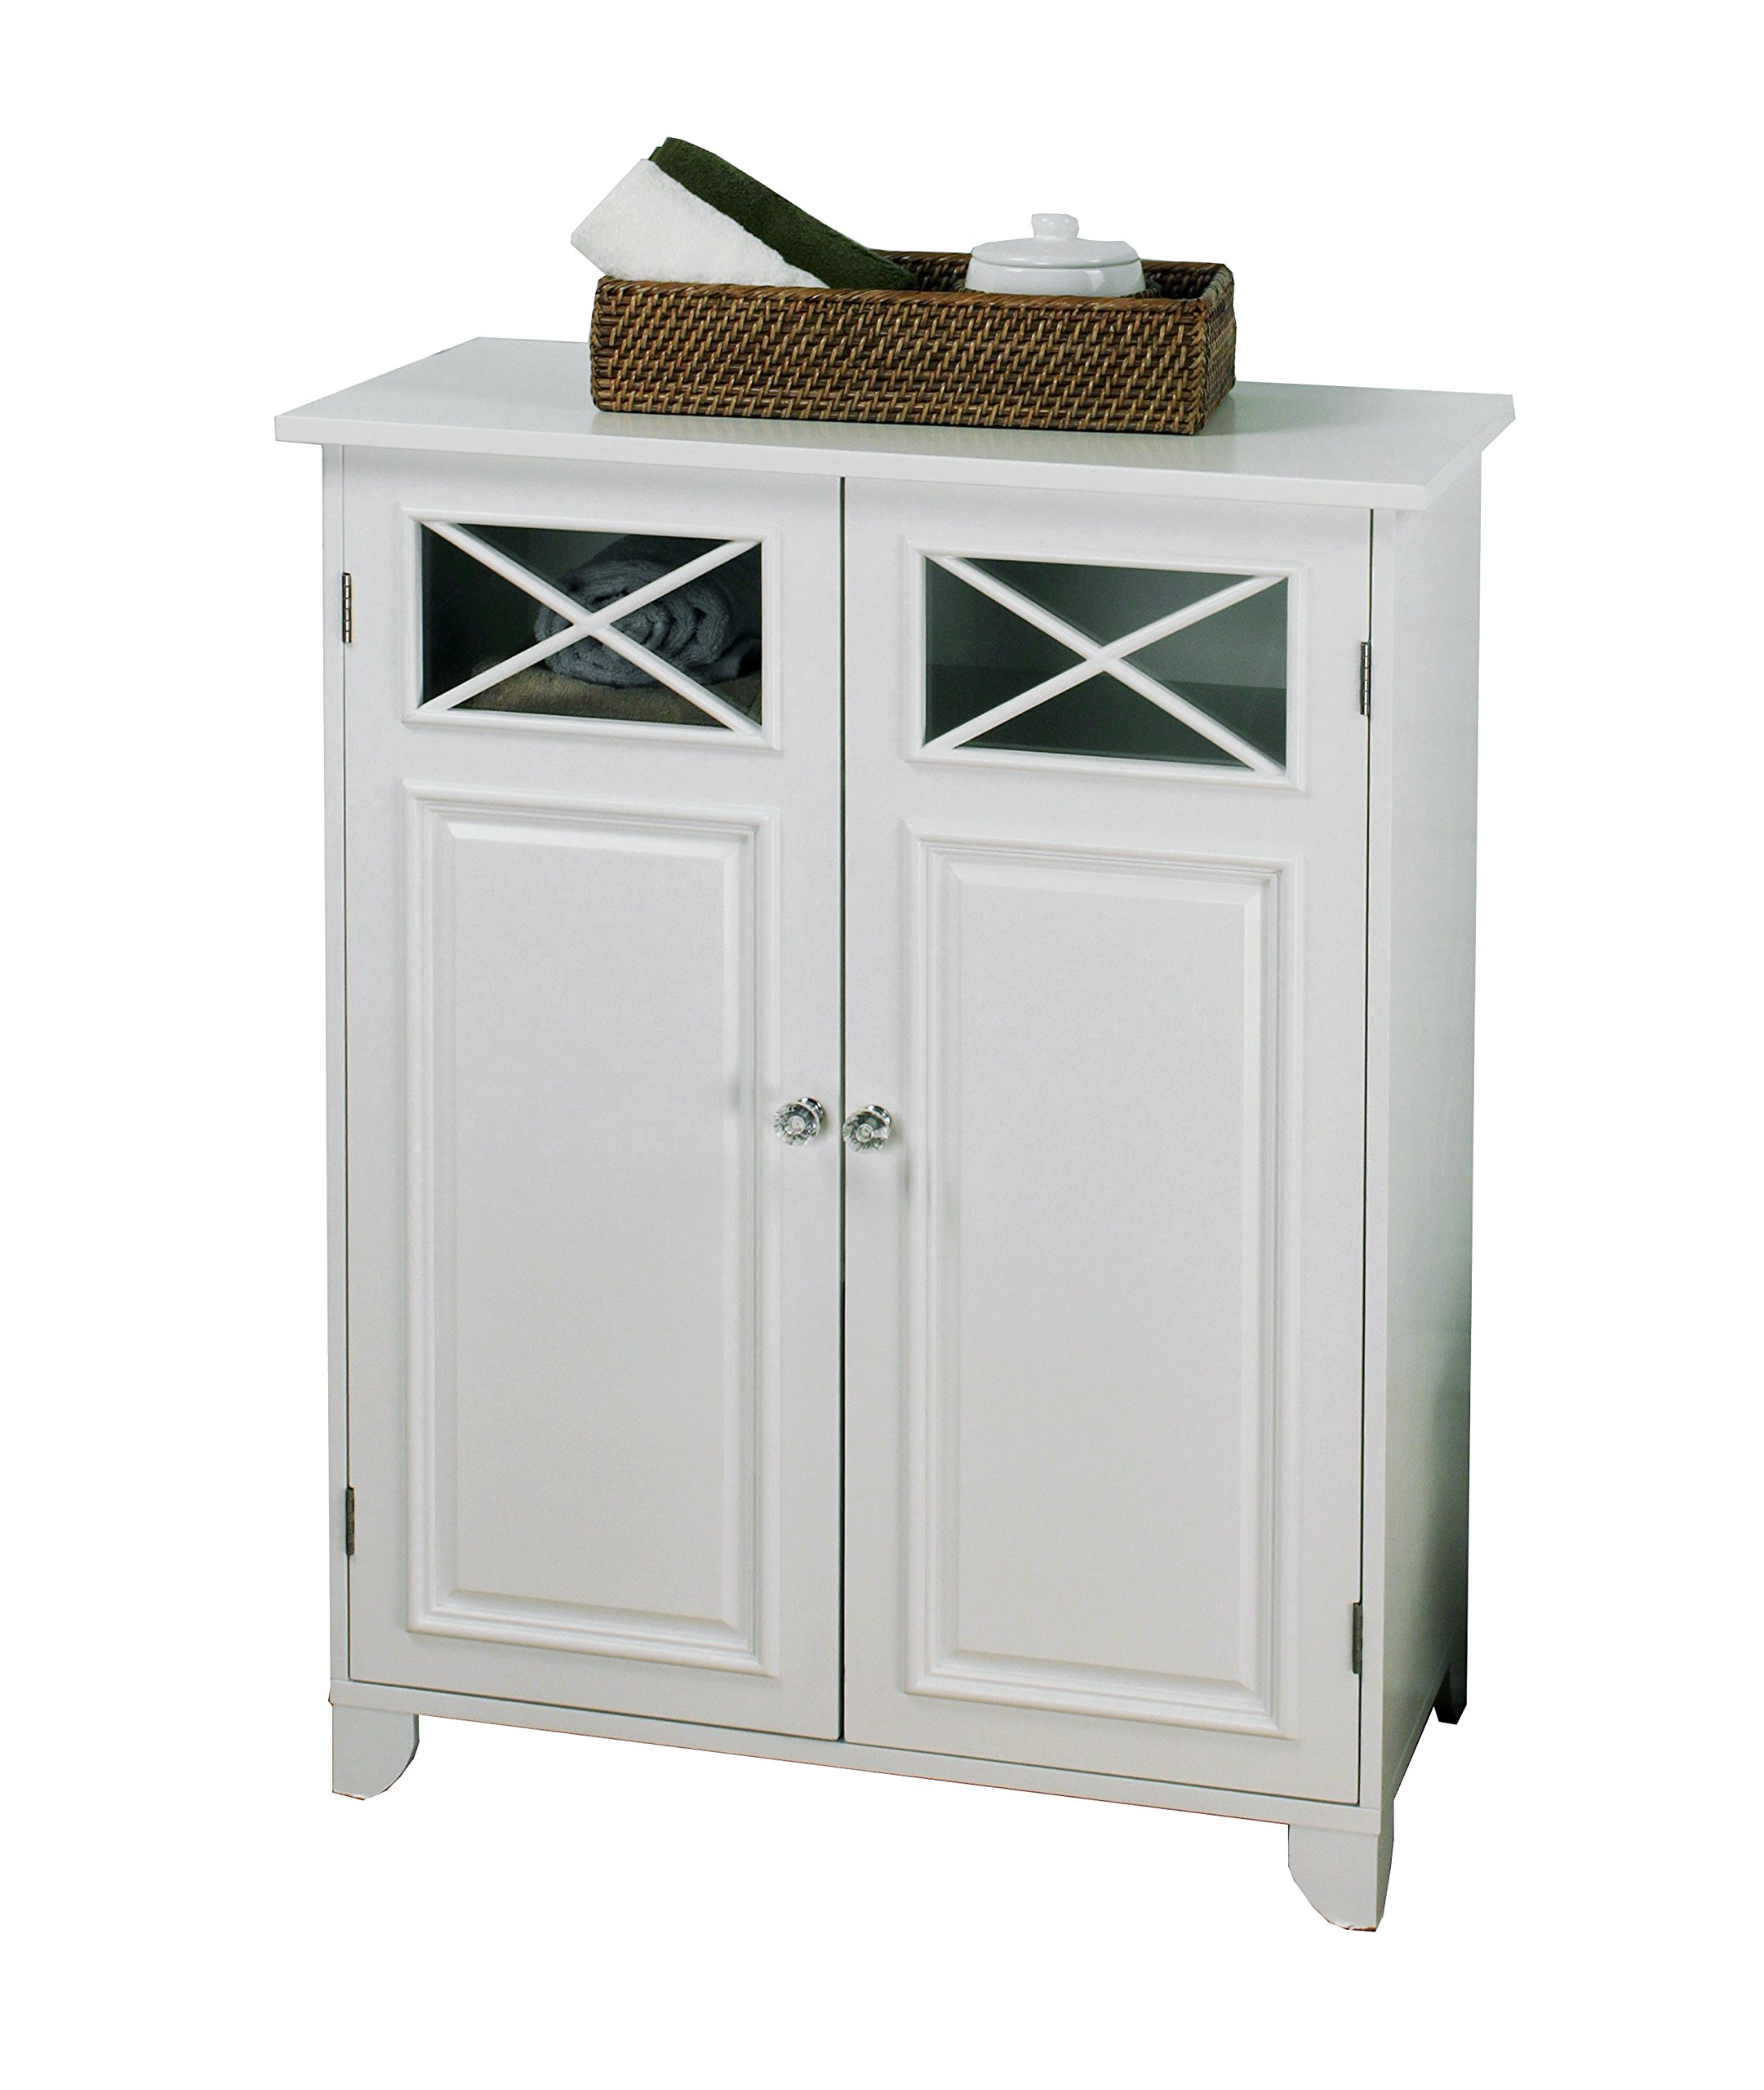 Elegant Home Fashions Dawson Collection Shelved Floor Cabinet, White by Elegant Home Fashions (Image #3)